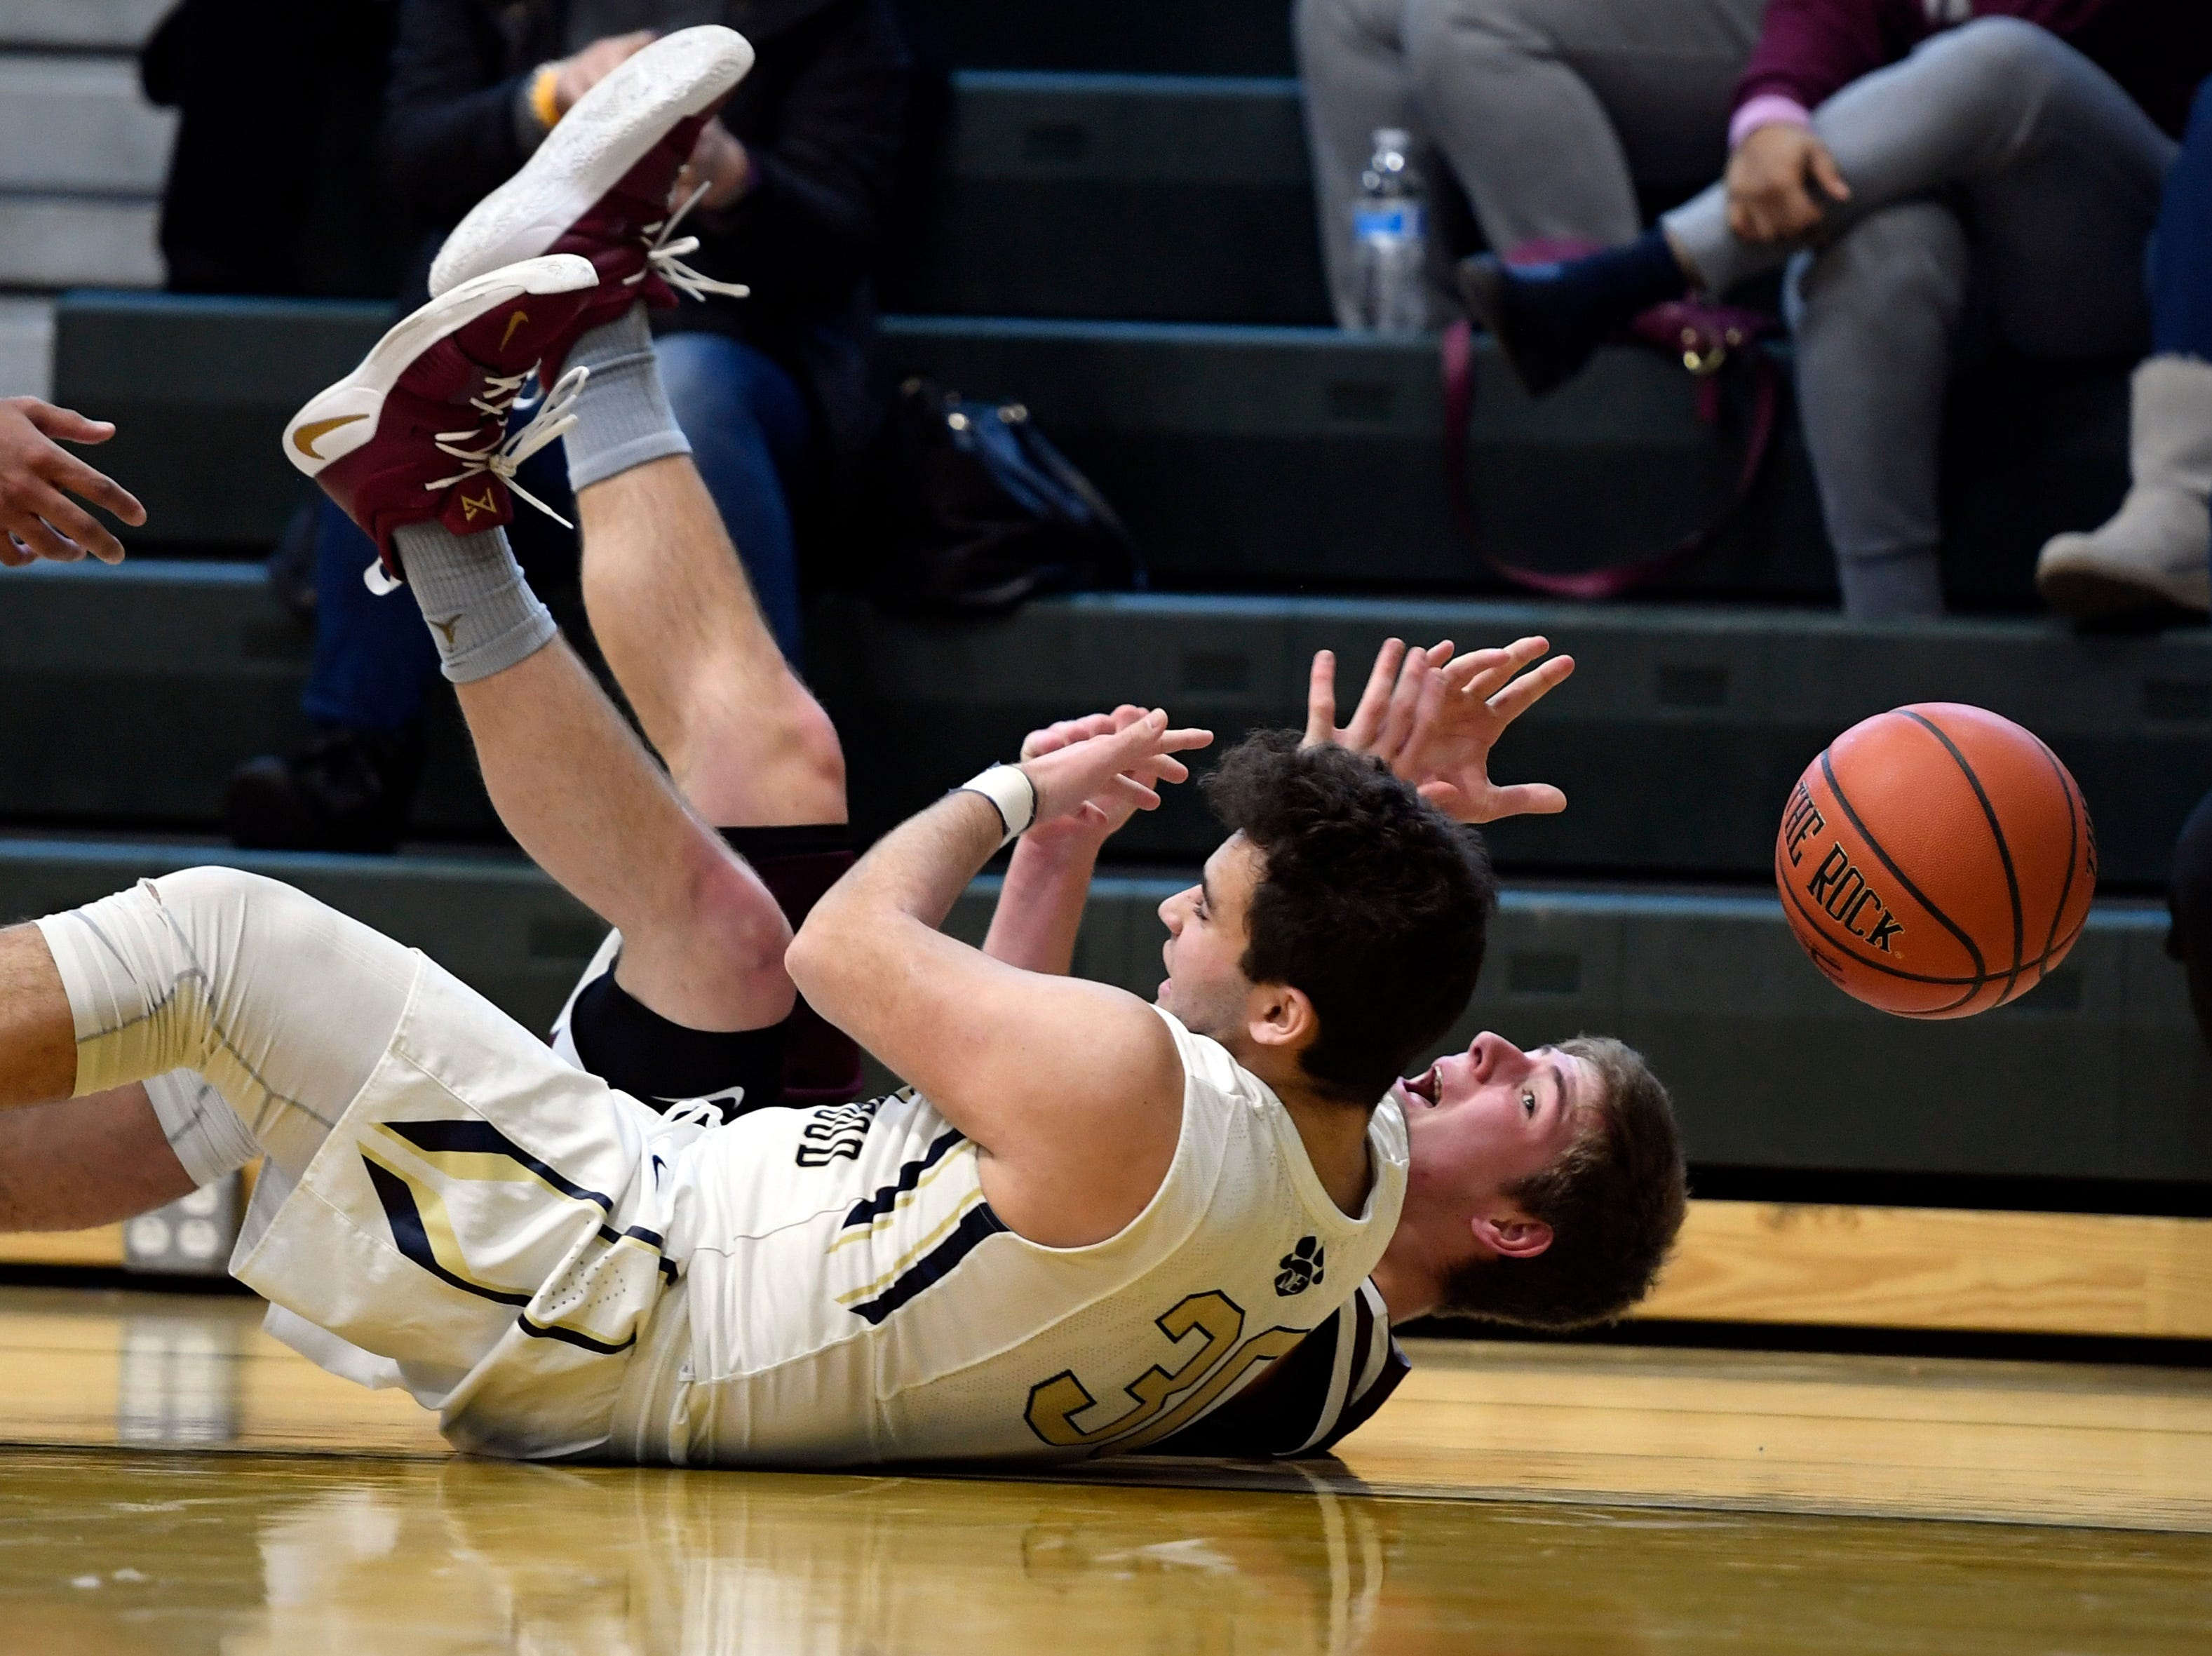 Dwight Englewood's Harrison Ruff (front) and Wayne Hills' Jake Belli fall as they fight for possession. Wayne Hills defeated Dwight Englewood 51-36 in Day 2 of the Public vs. Private Basketball Showcase at St. Joseph Regional on Sunday, Jan. 12, 2019, in Montvale.